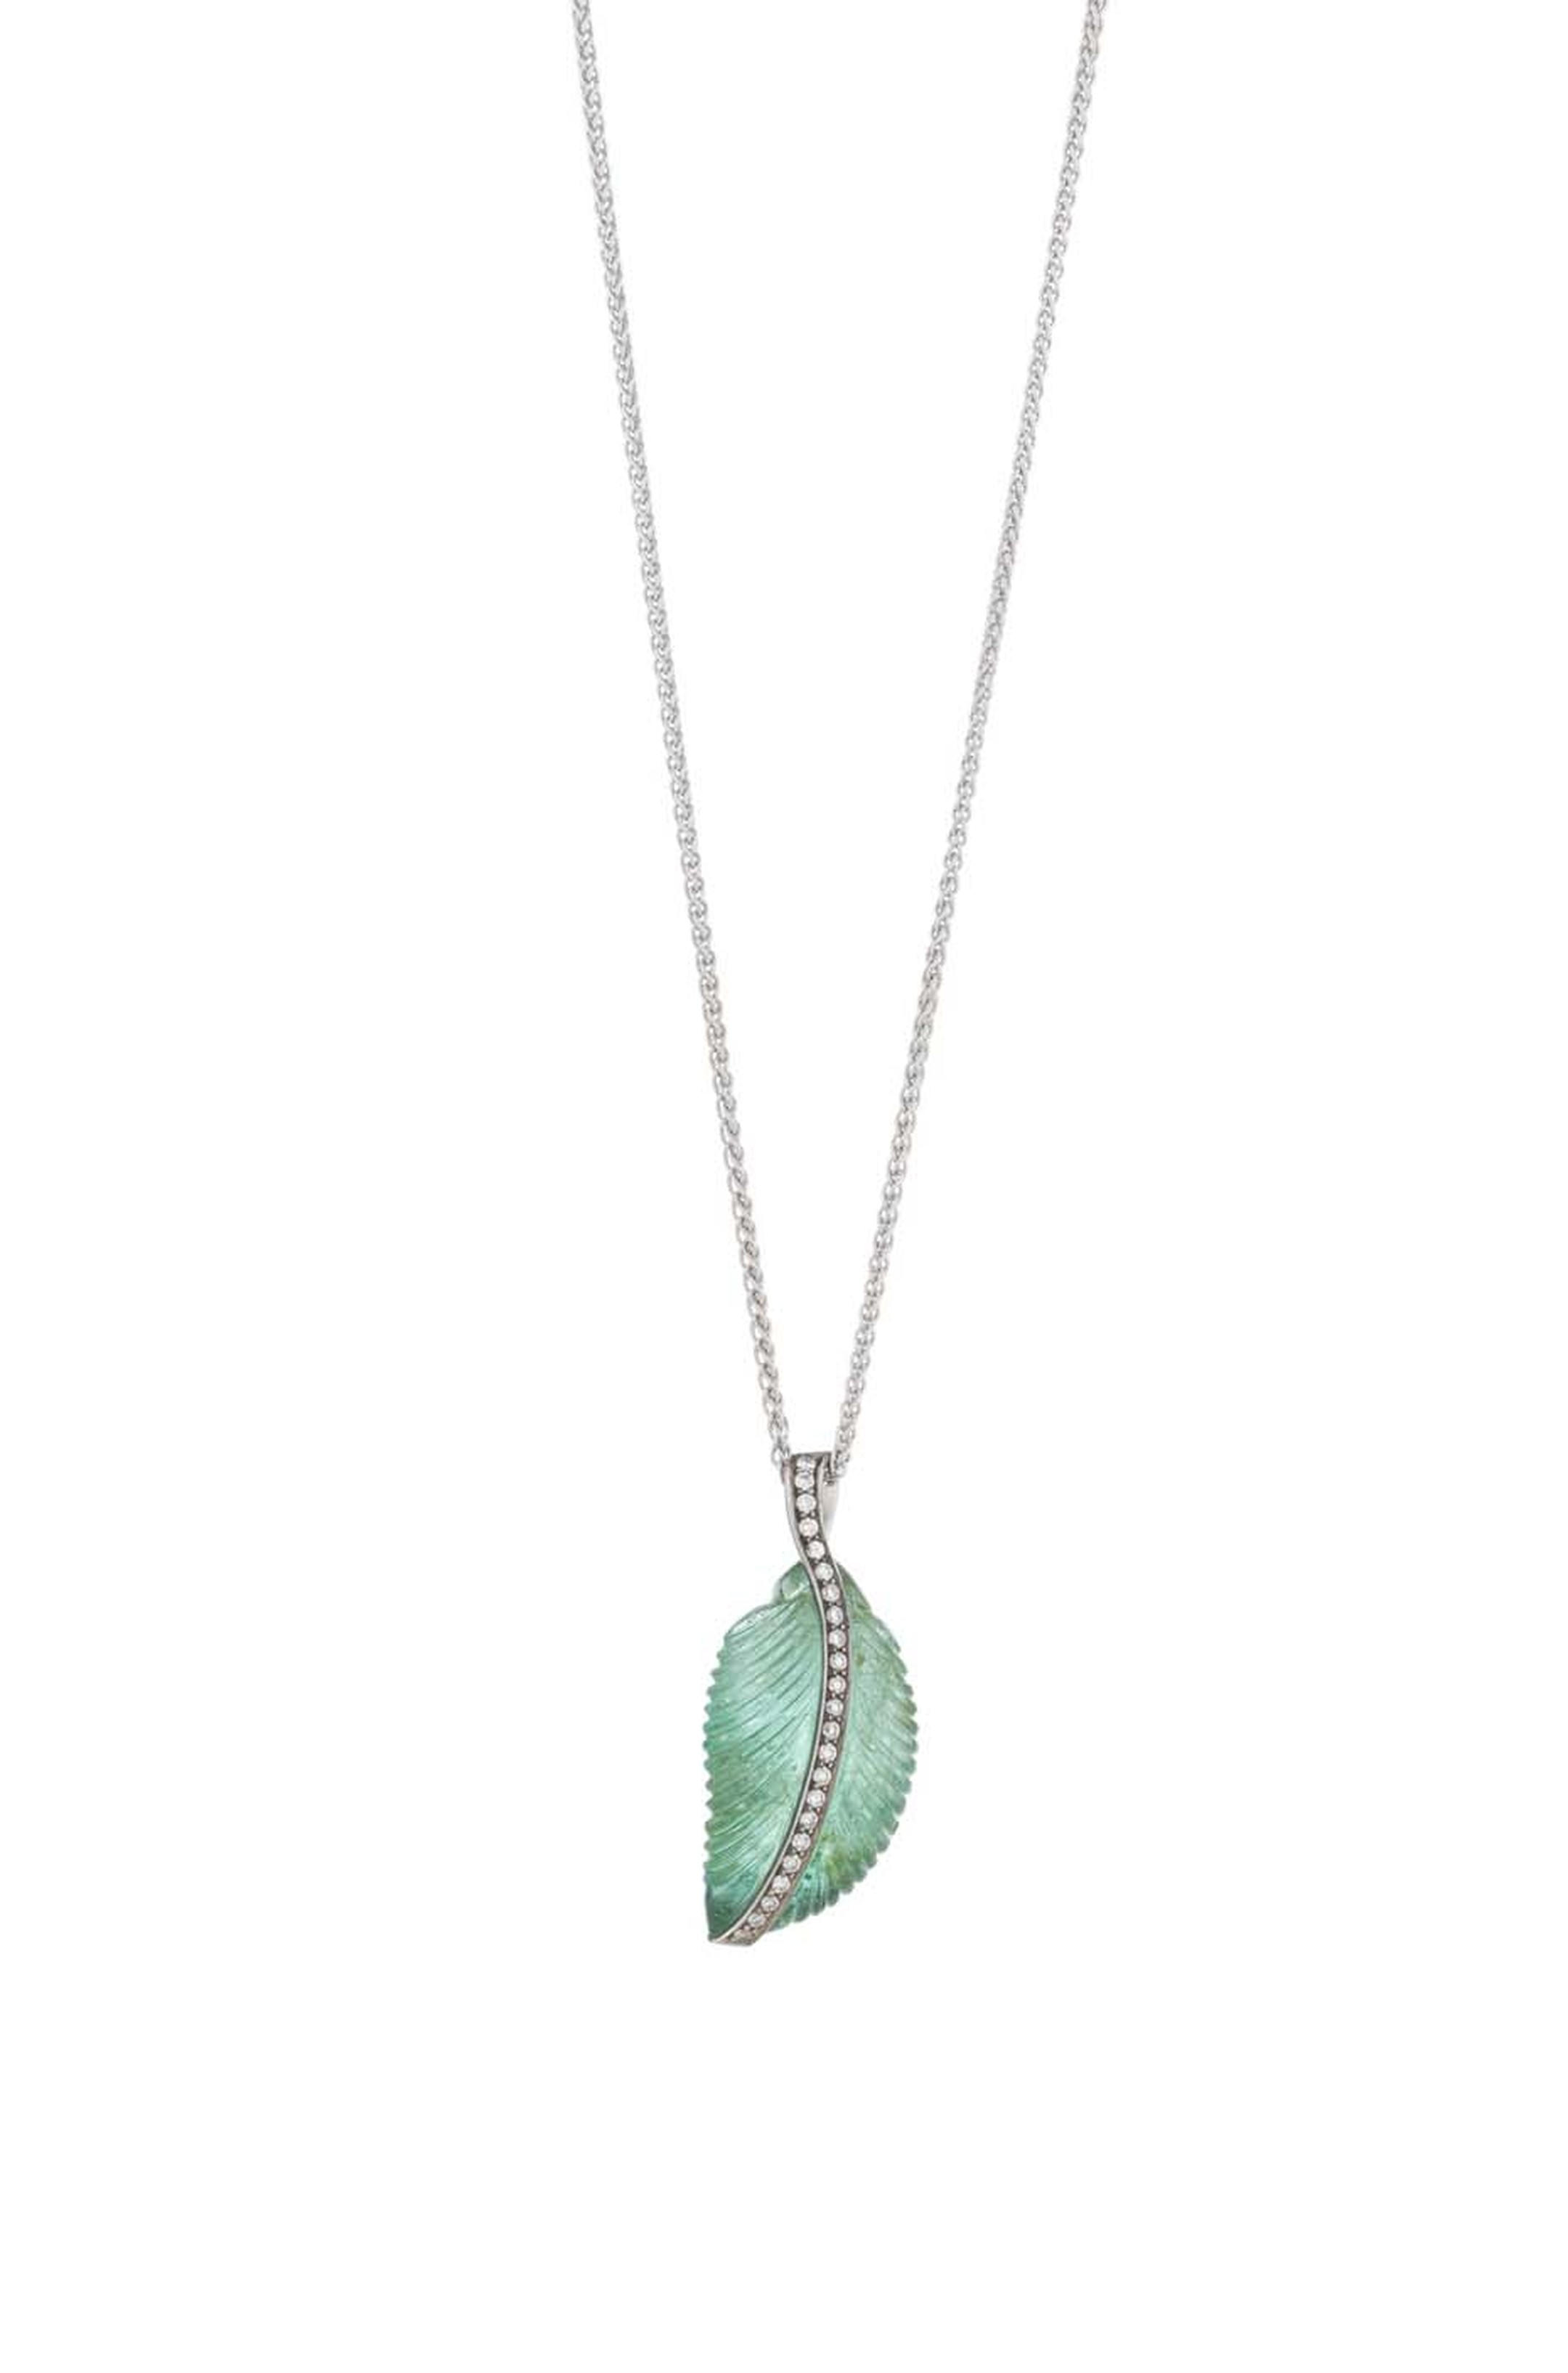 Holts London Park Life pendant featuring a carved emerald leaf set in white gold with brilliant-cut diamonds making their way through the vein of the leaf (£3,250).